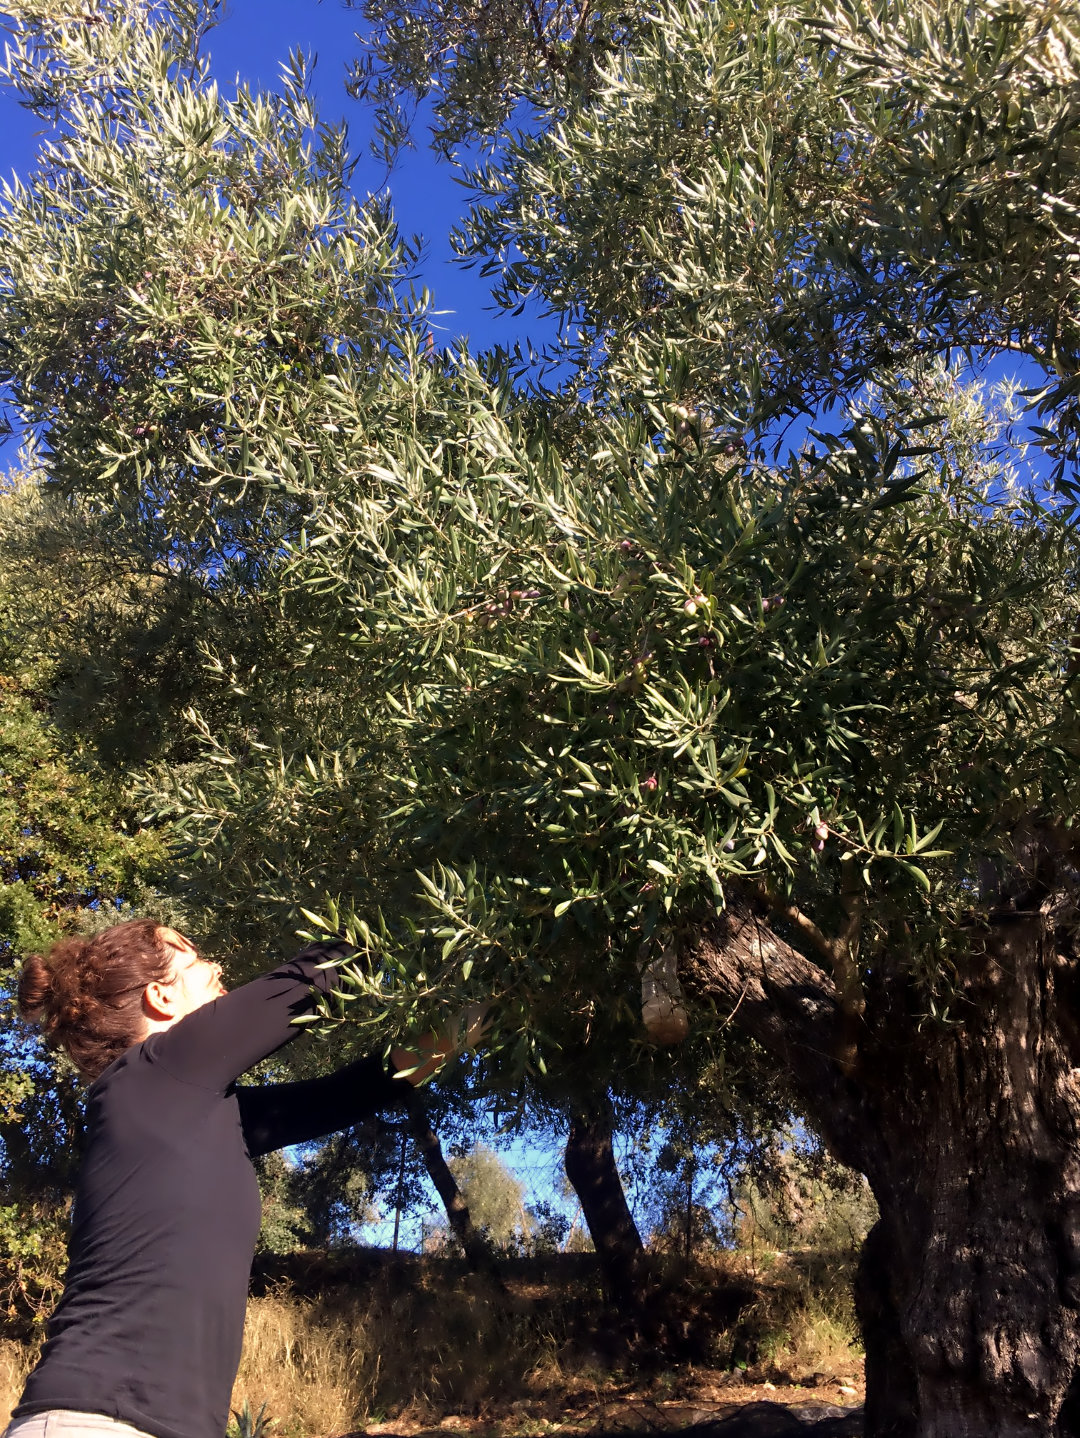 Stroking olives from the trees in our luxury villa rental in Ronda, Andalucia, Spain